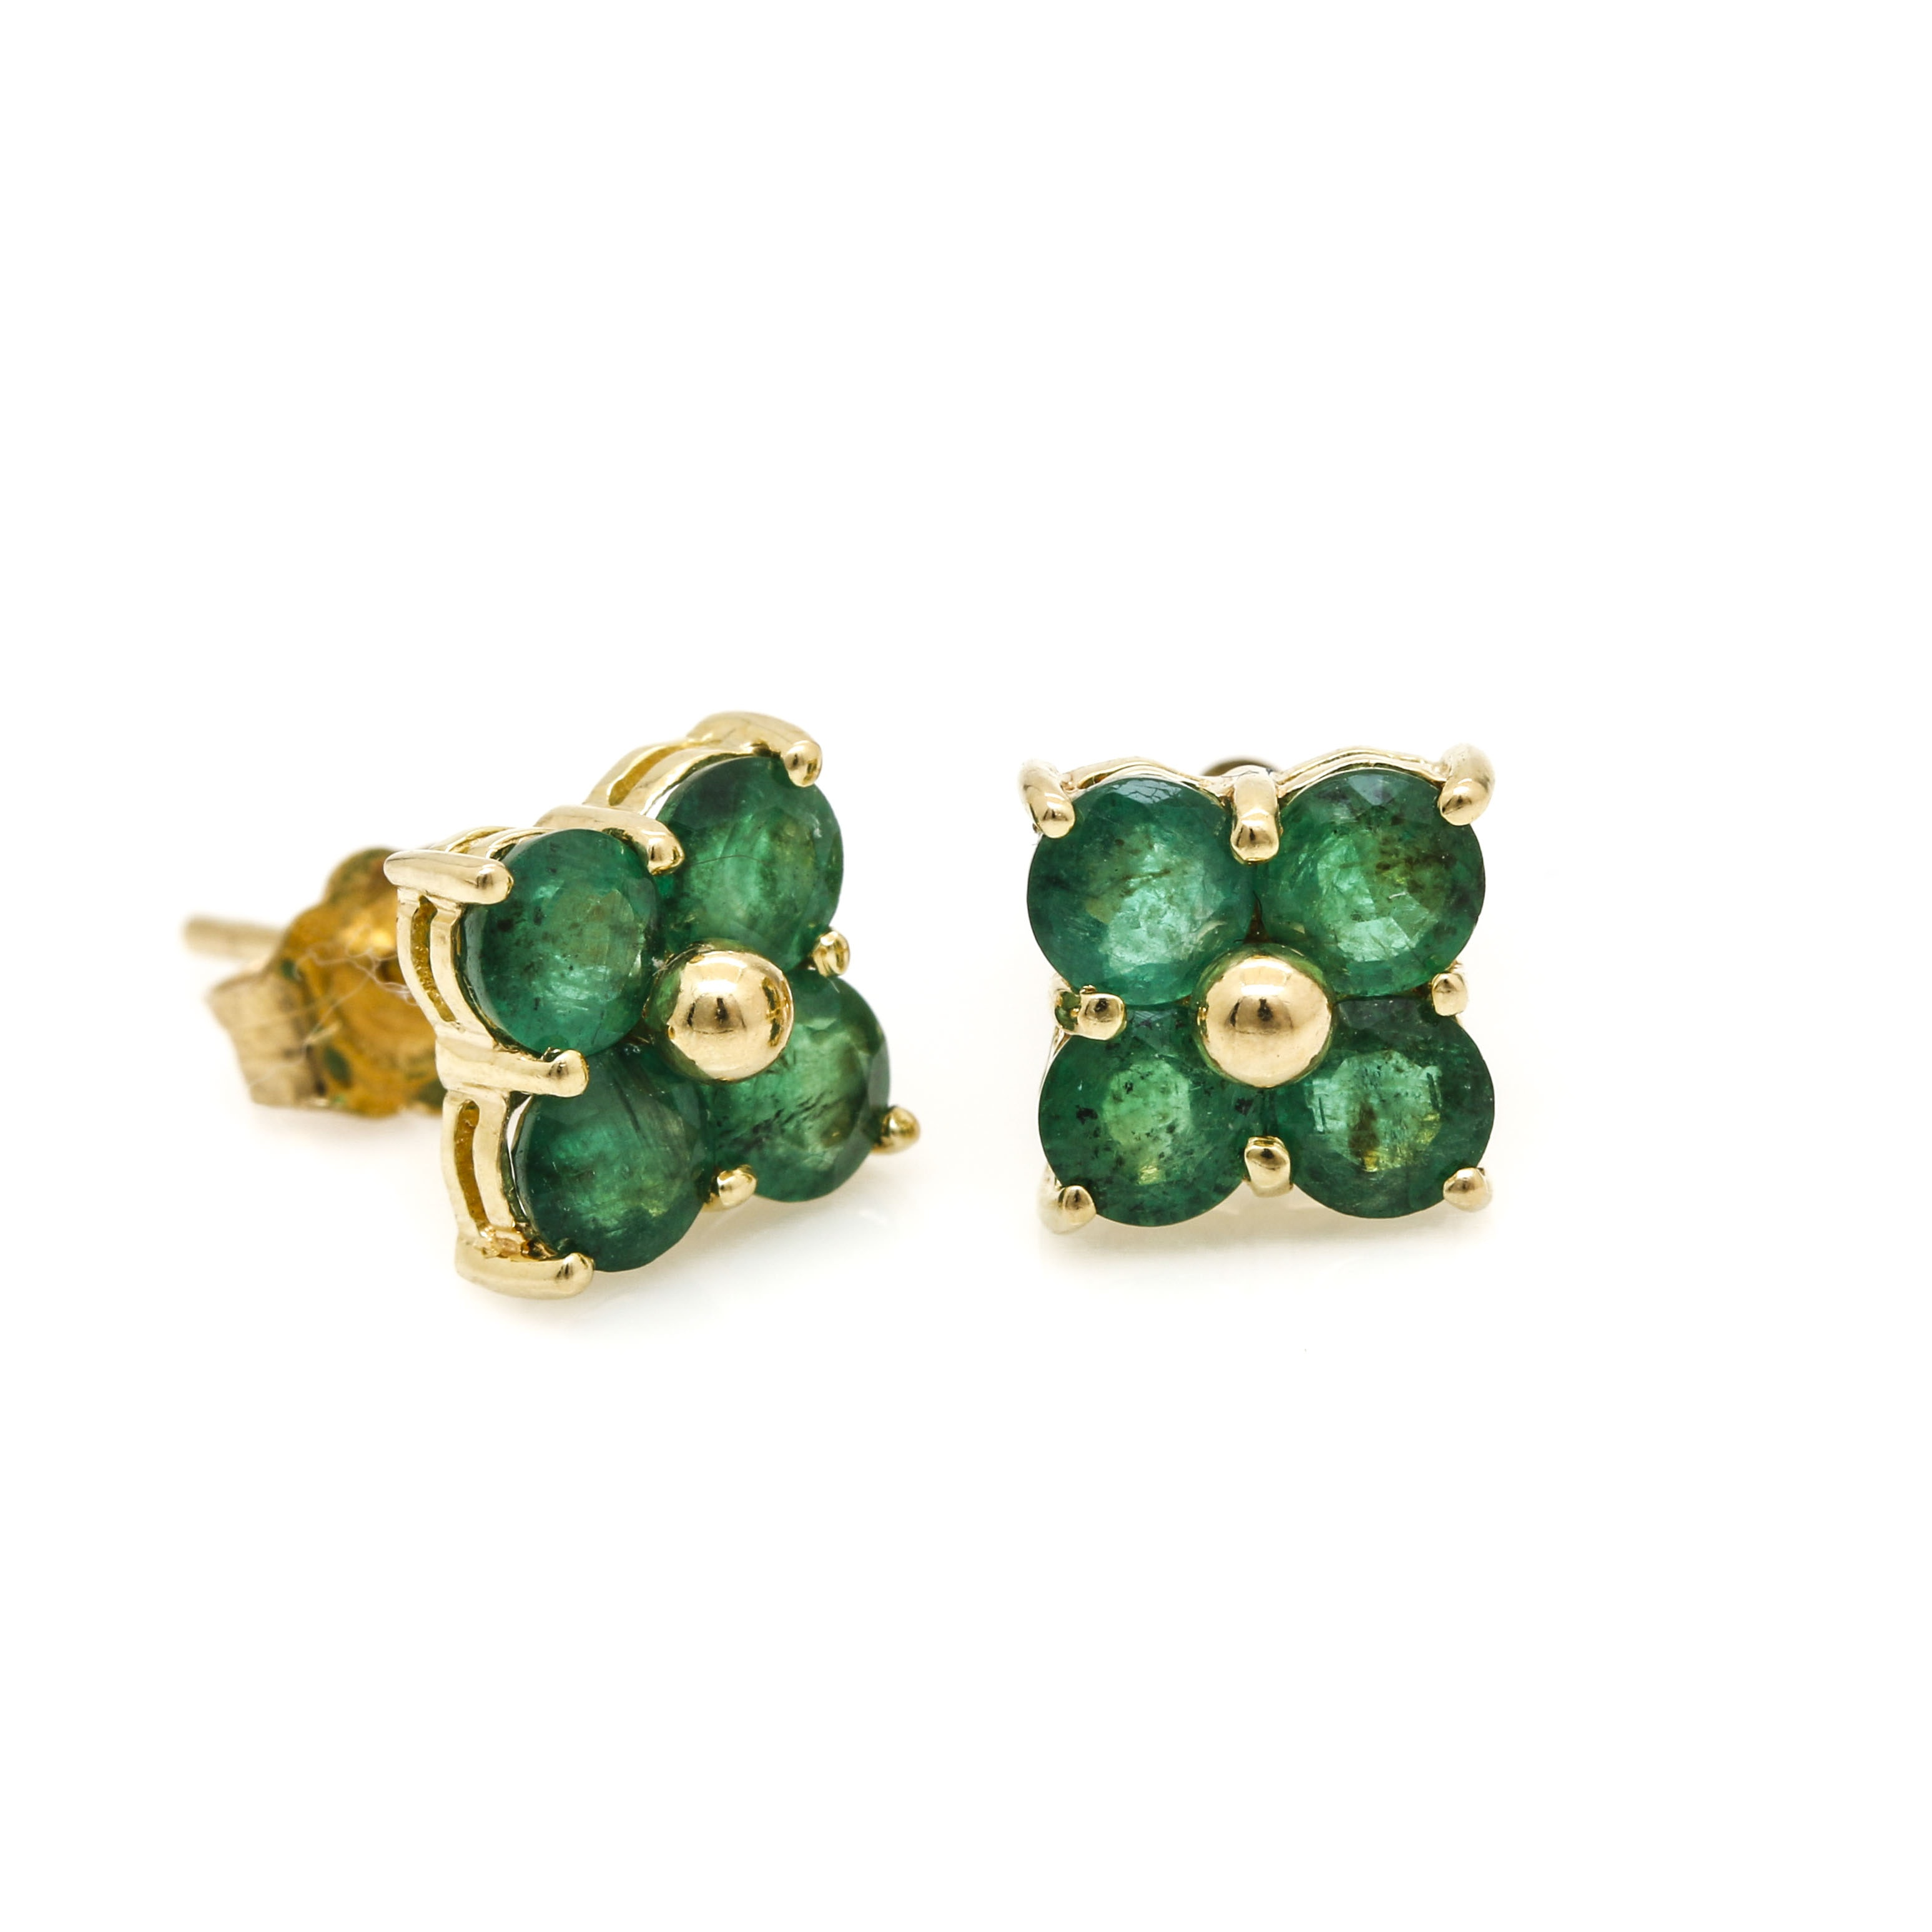 14K Yellow Gold Emerald Floral Stud Earrings